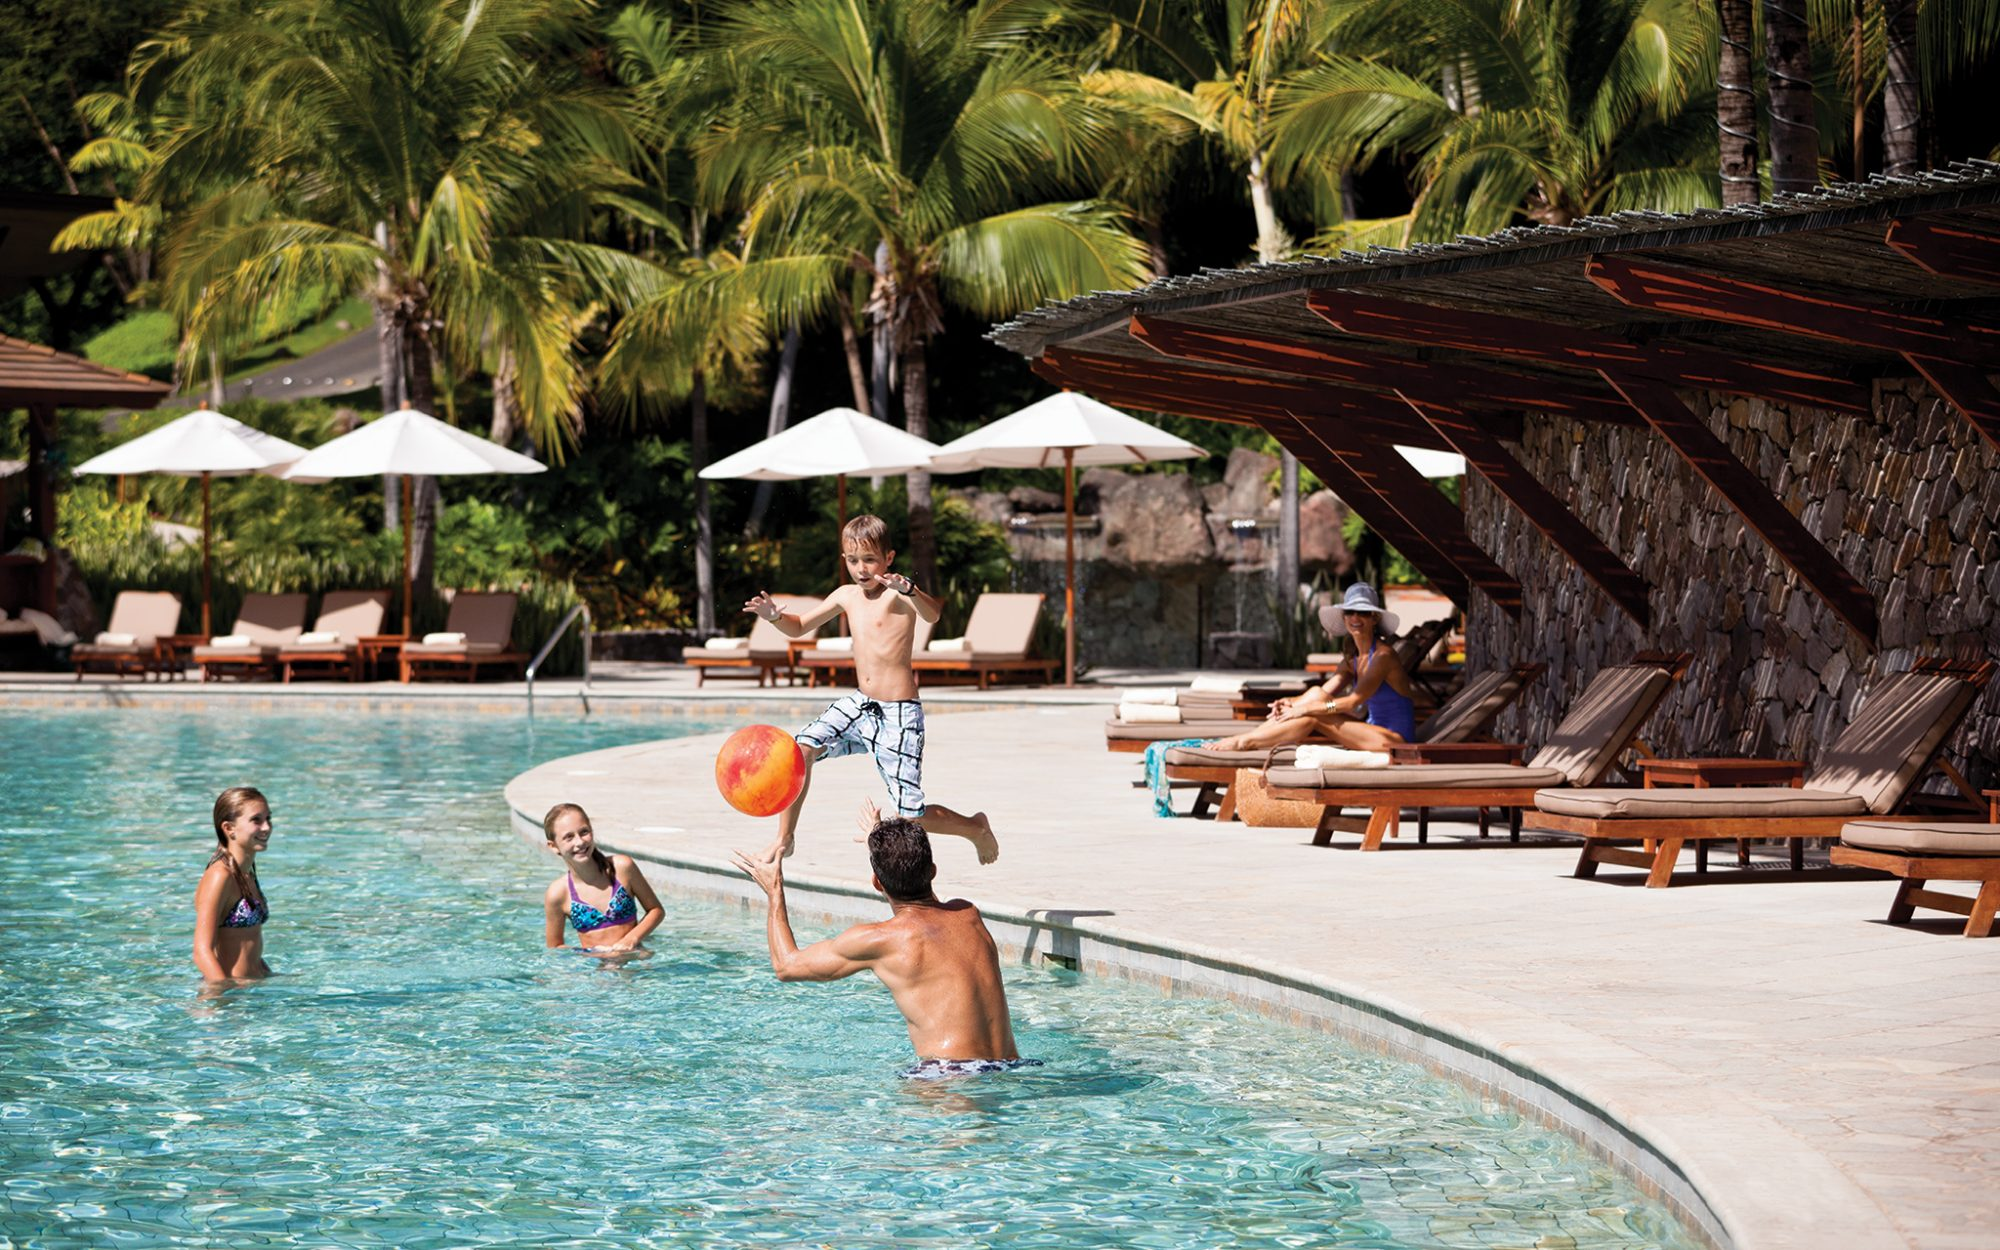 Best Family Beach Hotels: No. 25 (tie) Four Seasons Resort Costa Rica at Peninsula Papagayo